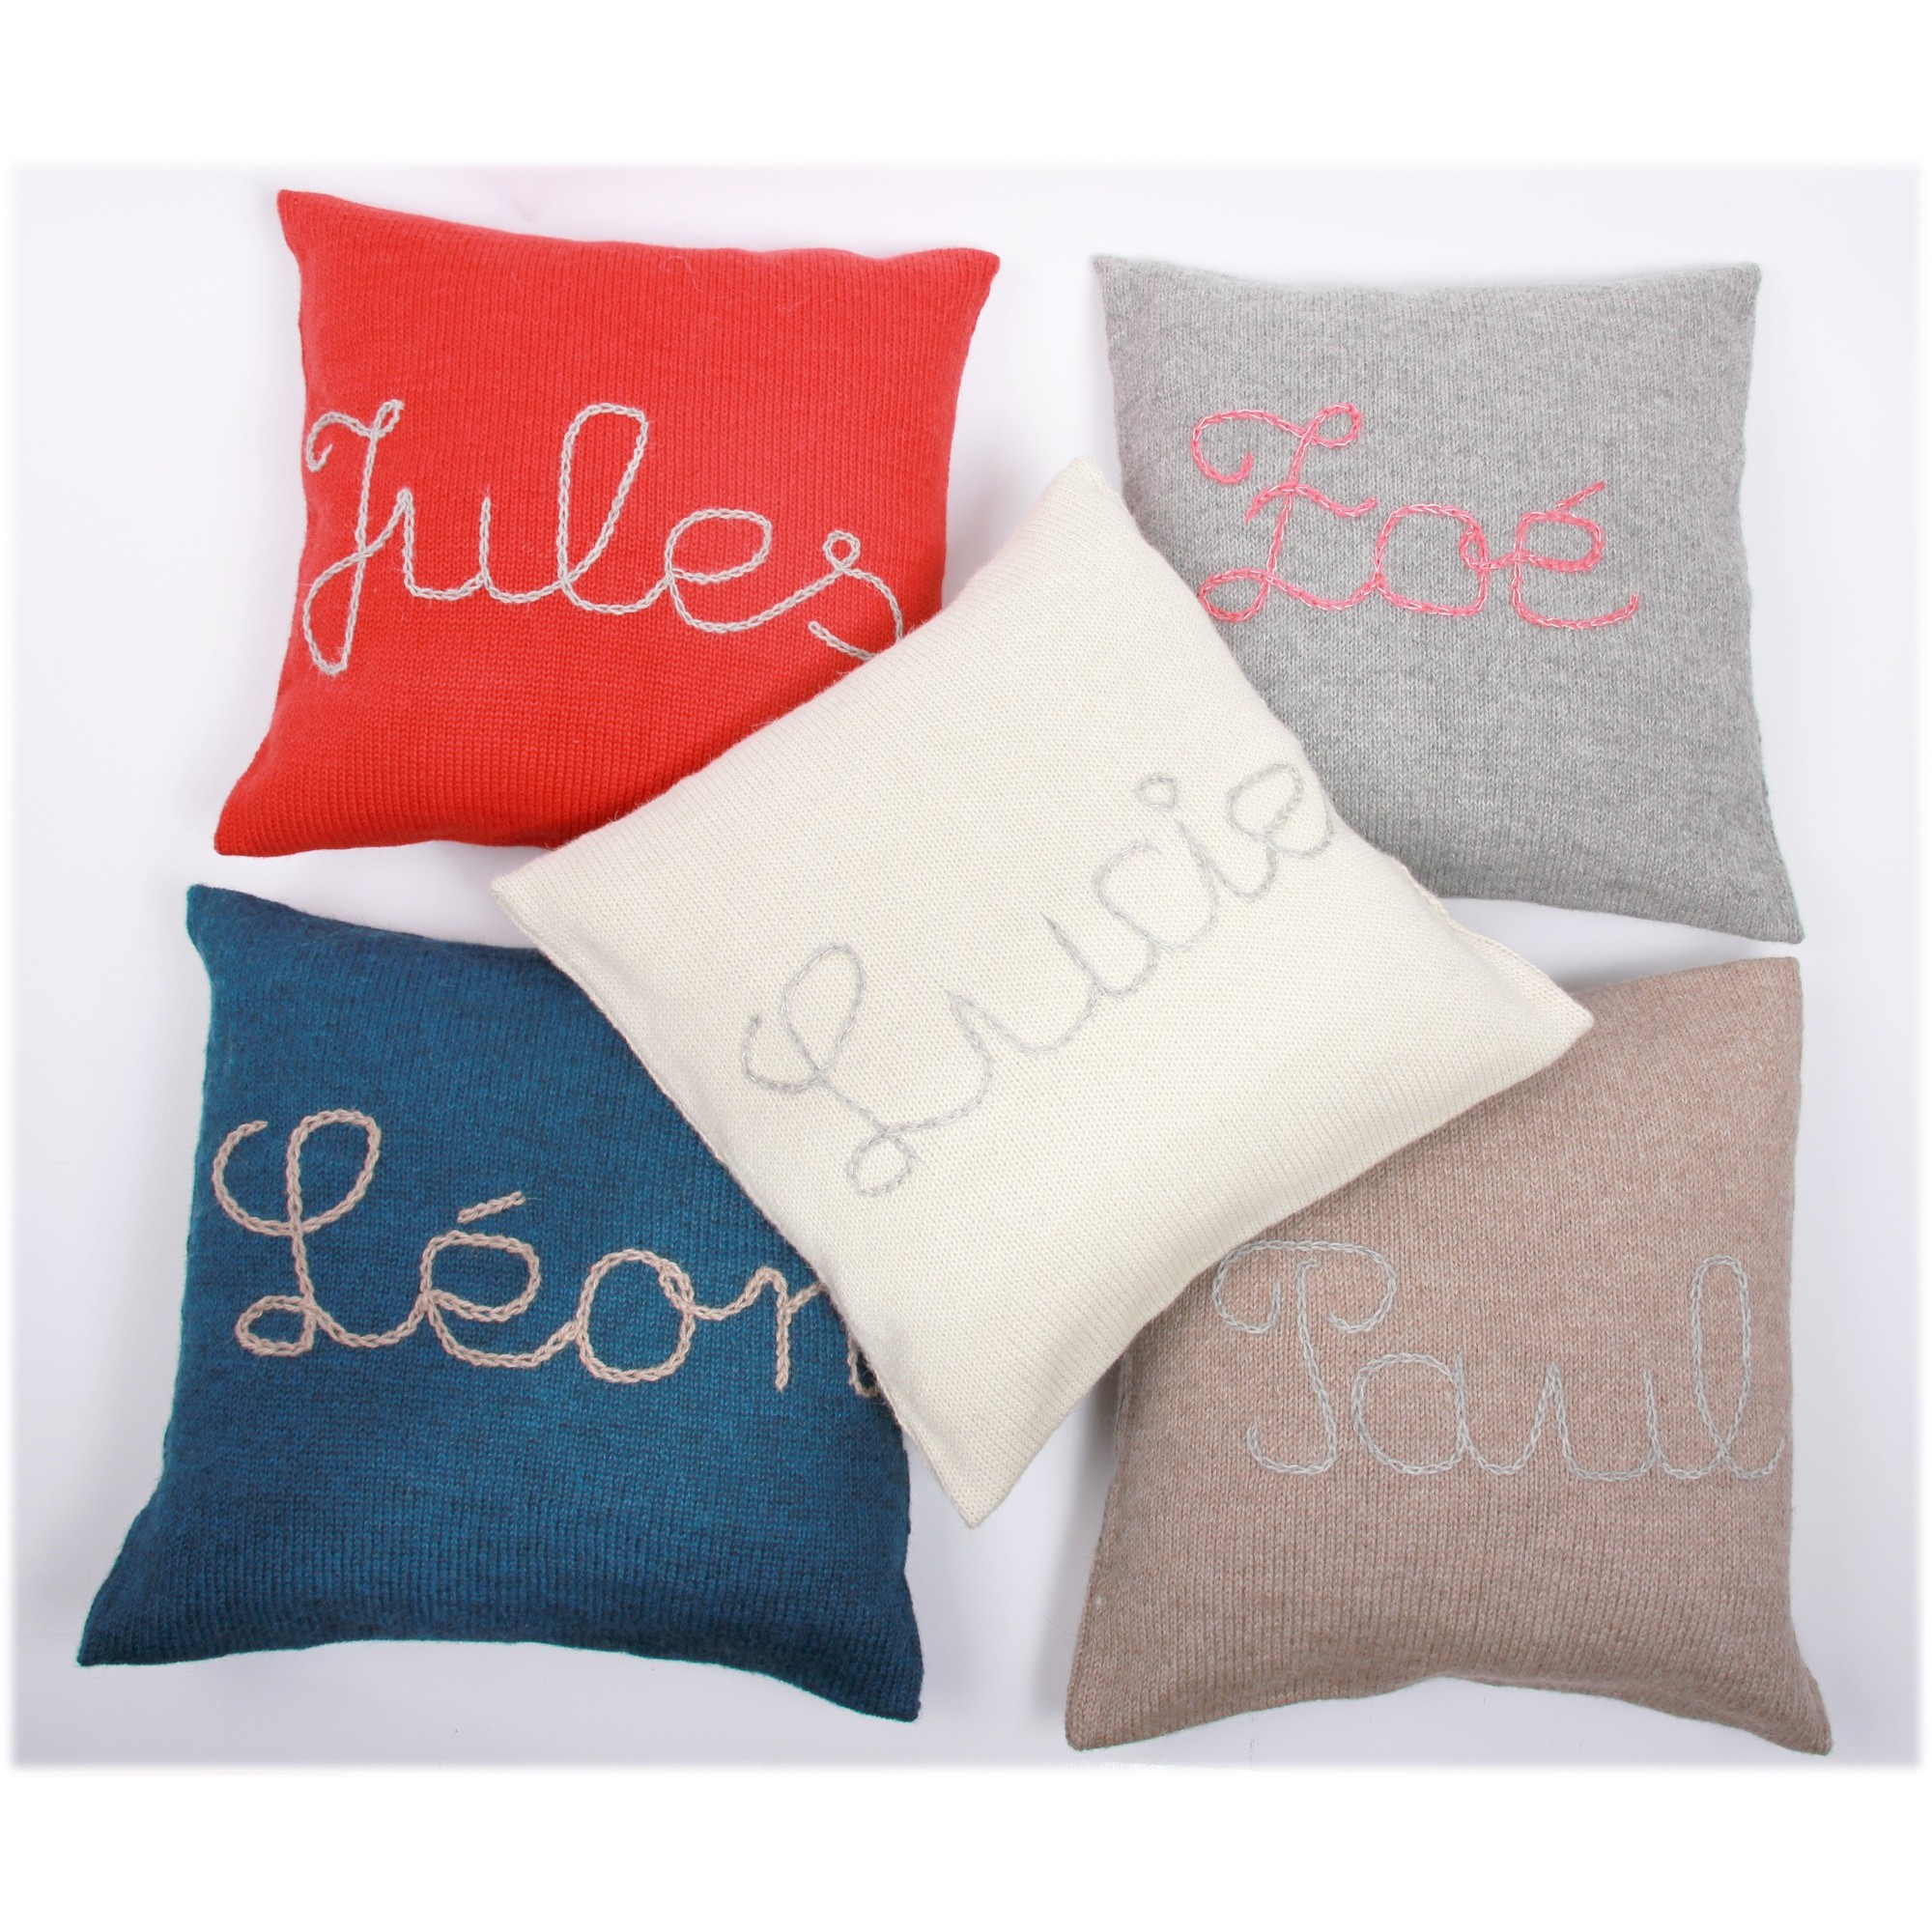 Customizable cushions of different colors - with embroideries